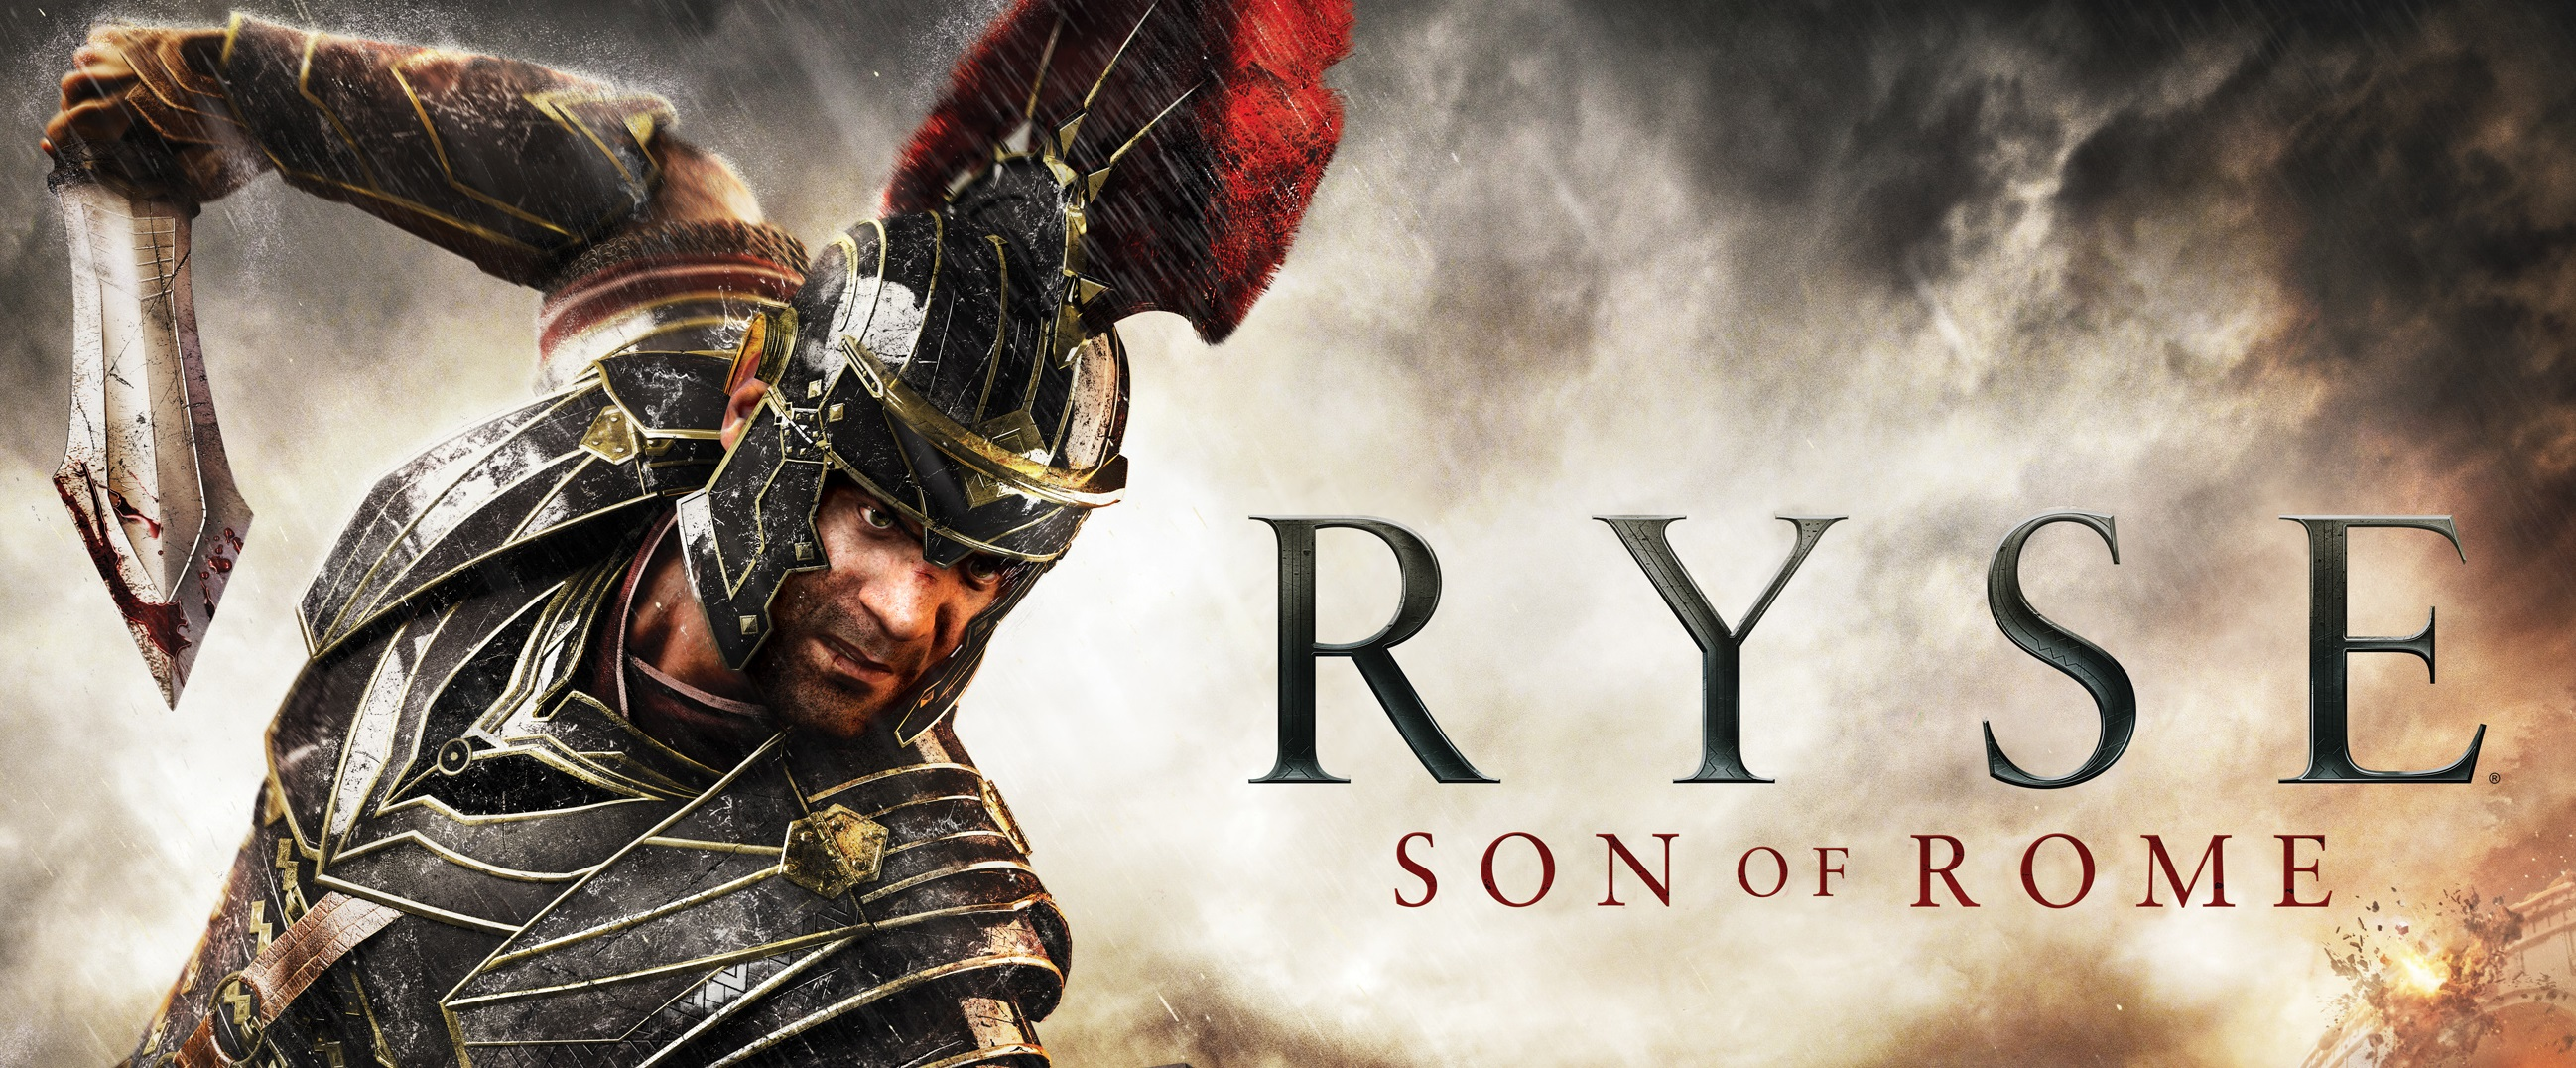 Ryse Son of Rome PC Csover